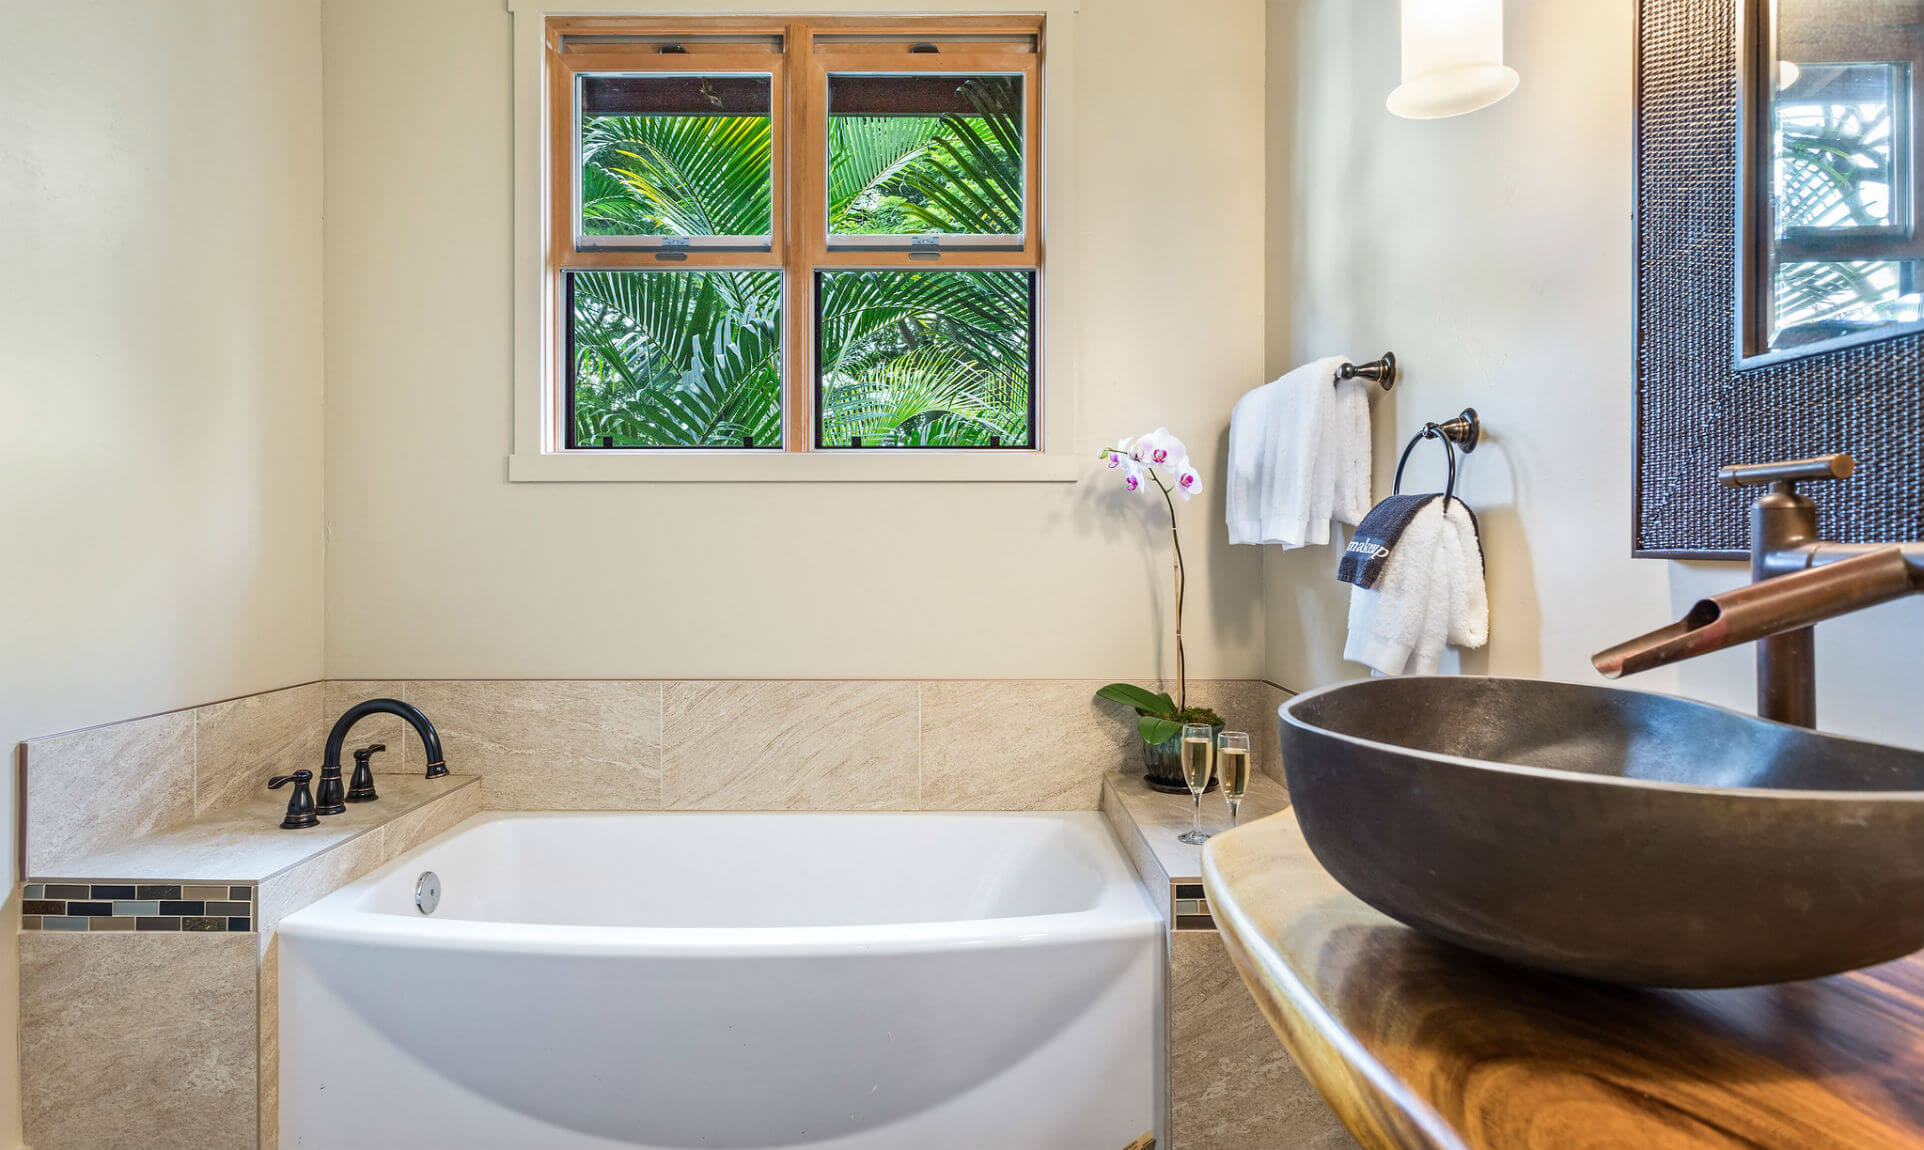 Bath and sink in our Big Island vacation rental